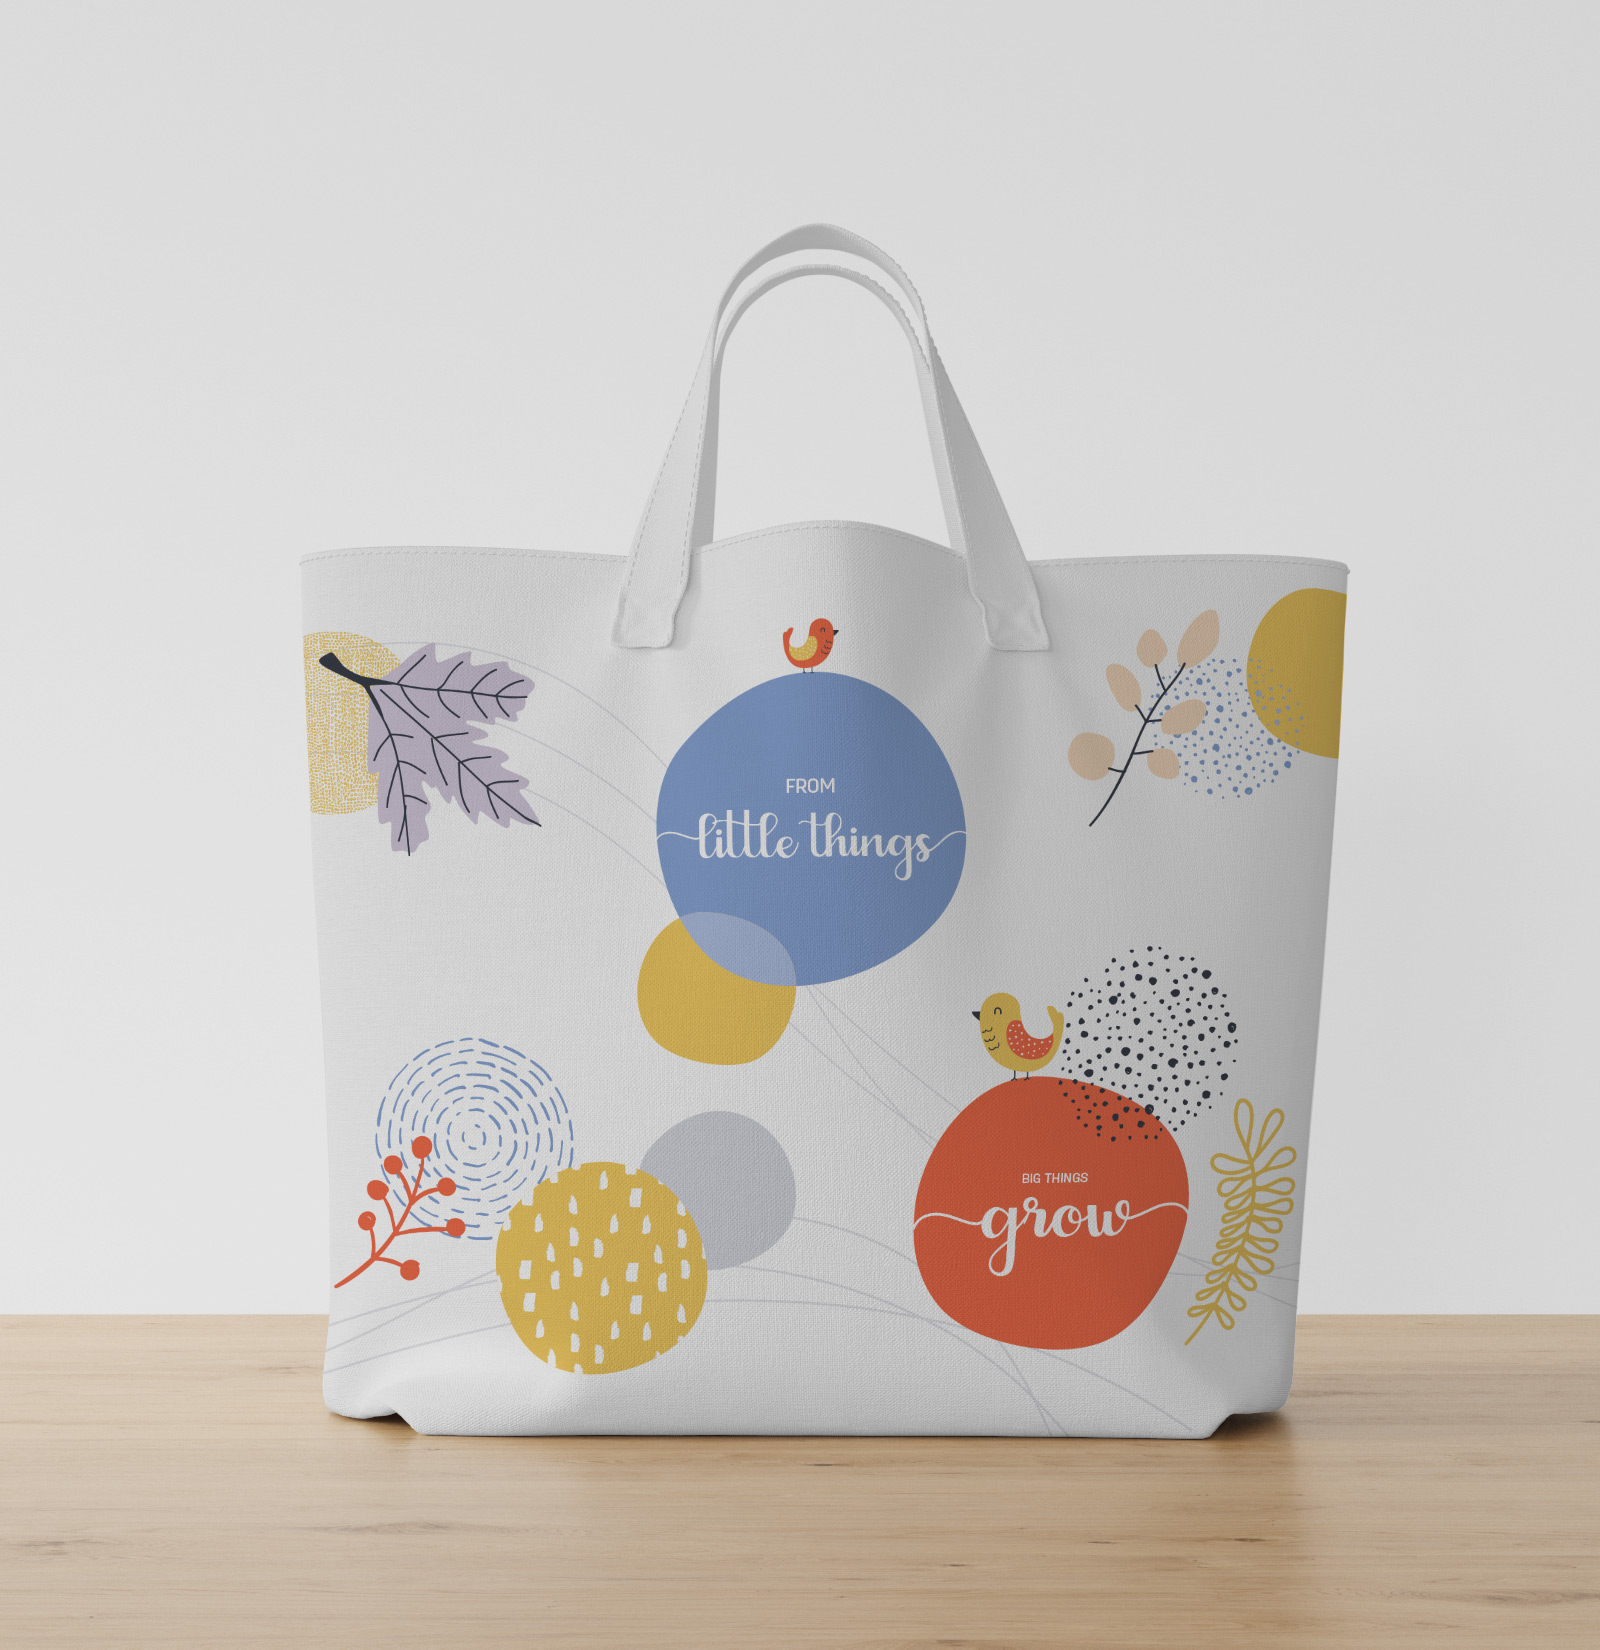 St John of God Maternity Campaign Tote Bag